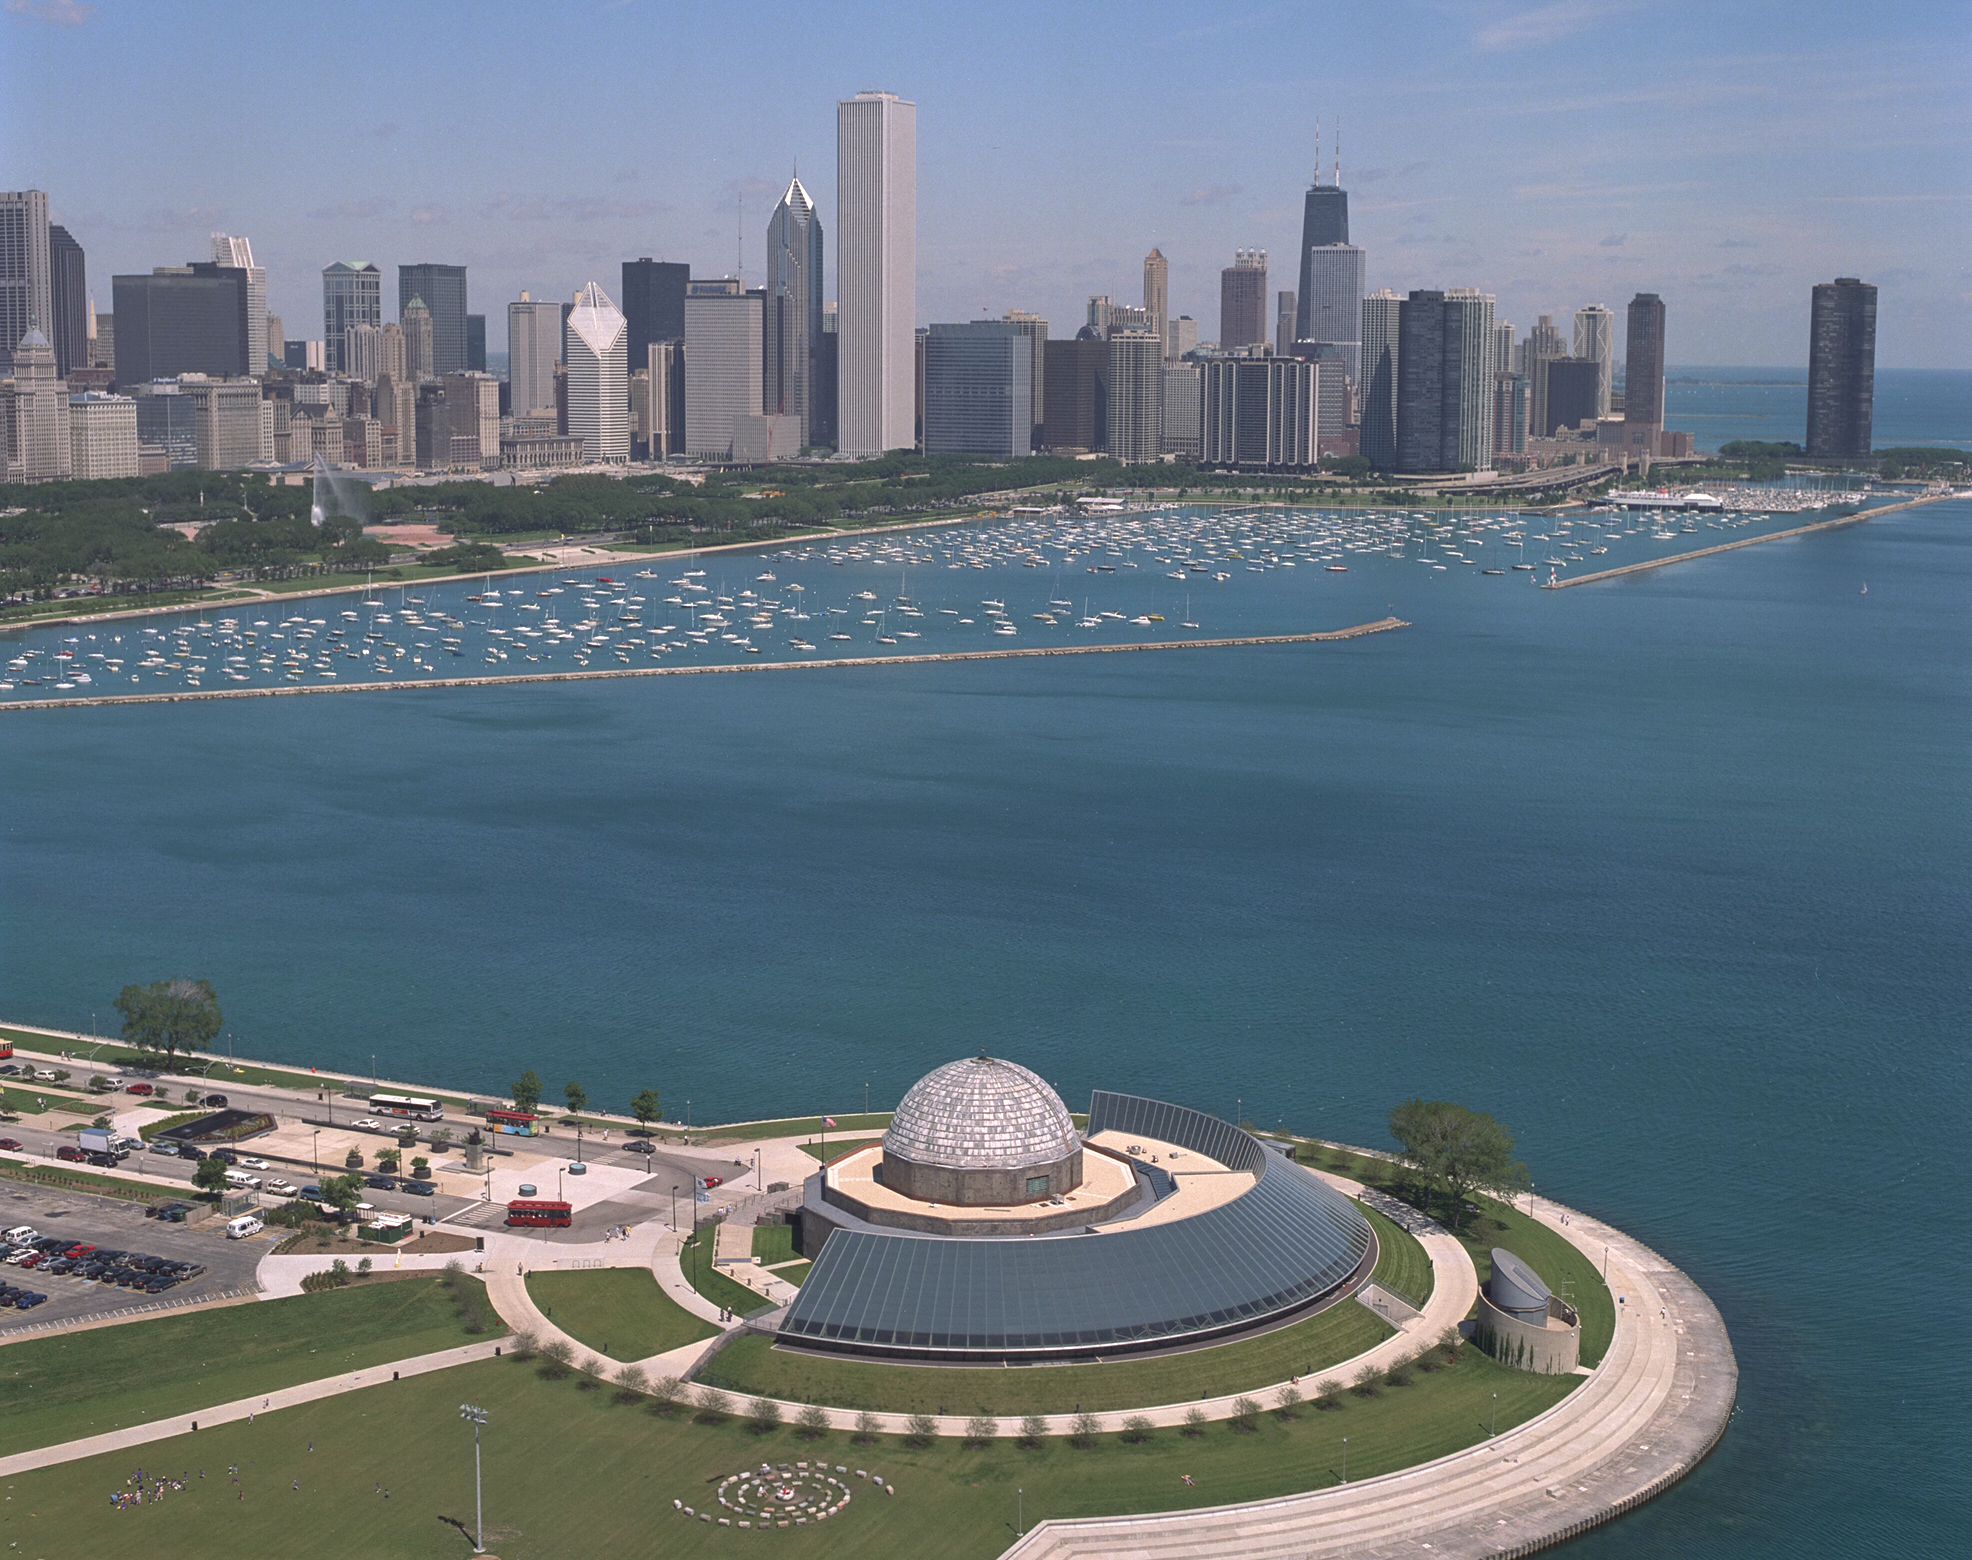 Adler Planetarium - Co-ProducersThe Adler Planetarium connects people to the Universe and each other. Whether it is introducing a guest to the Ring Nebula, a neighborhood school to a community partner, a research team to a network of citizen scientists, or one staff member to another, the Adler's focus on meaningful connections dates back nearly a century.Consisting of a 'renaissance team' of astronomers, visualization specialists, artists, and science communication researchers, the Adler's Space Visualization Group (SVG) and Digital Experience teams specialize in data visualization driven storytelling. They produce the Adler's planetarium shows, and the Kavli Fulldome Lecture Series, as well as digital exhibit and programmatic content for the Adler. The Adler's dome theater experiences and digital visualization work have been recognized with some of the highest awards in the field.Dr. Mark SubbaRao, DIrector of Space Visualization Laboratory, and Mike Smail, Director of Theaters and Digital Experience, are key technical consultants for the Enigma project.More at www.adlerplanetarium.org